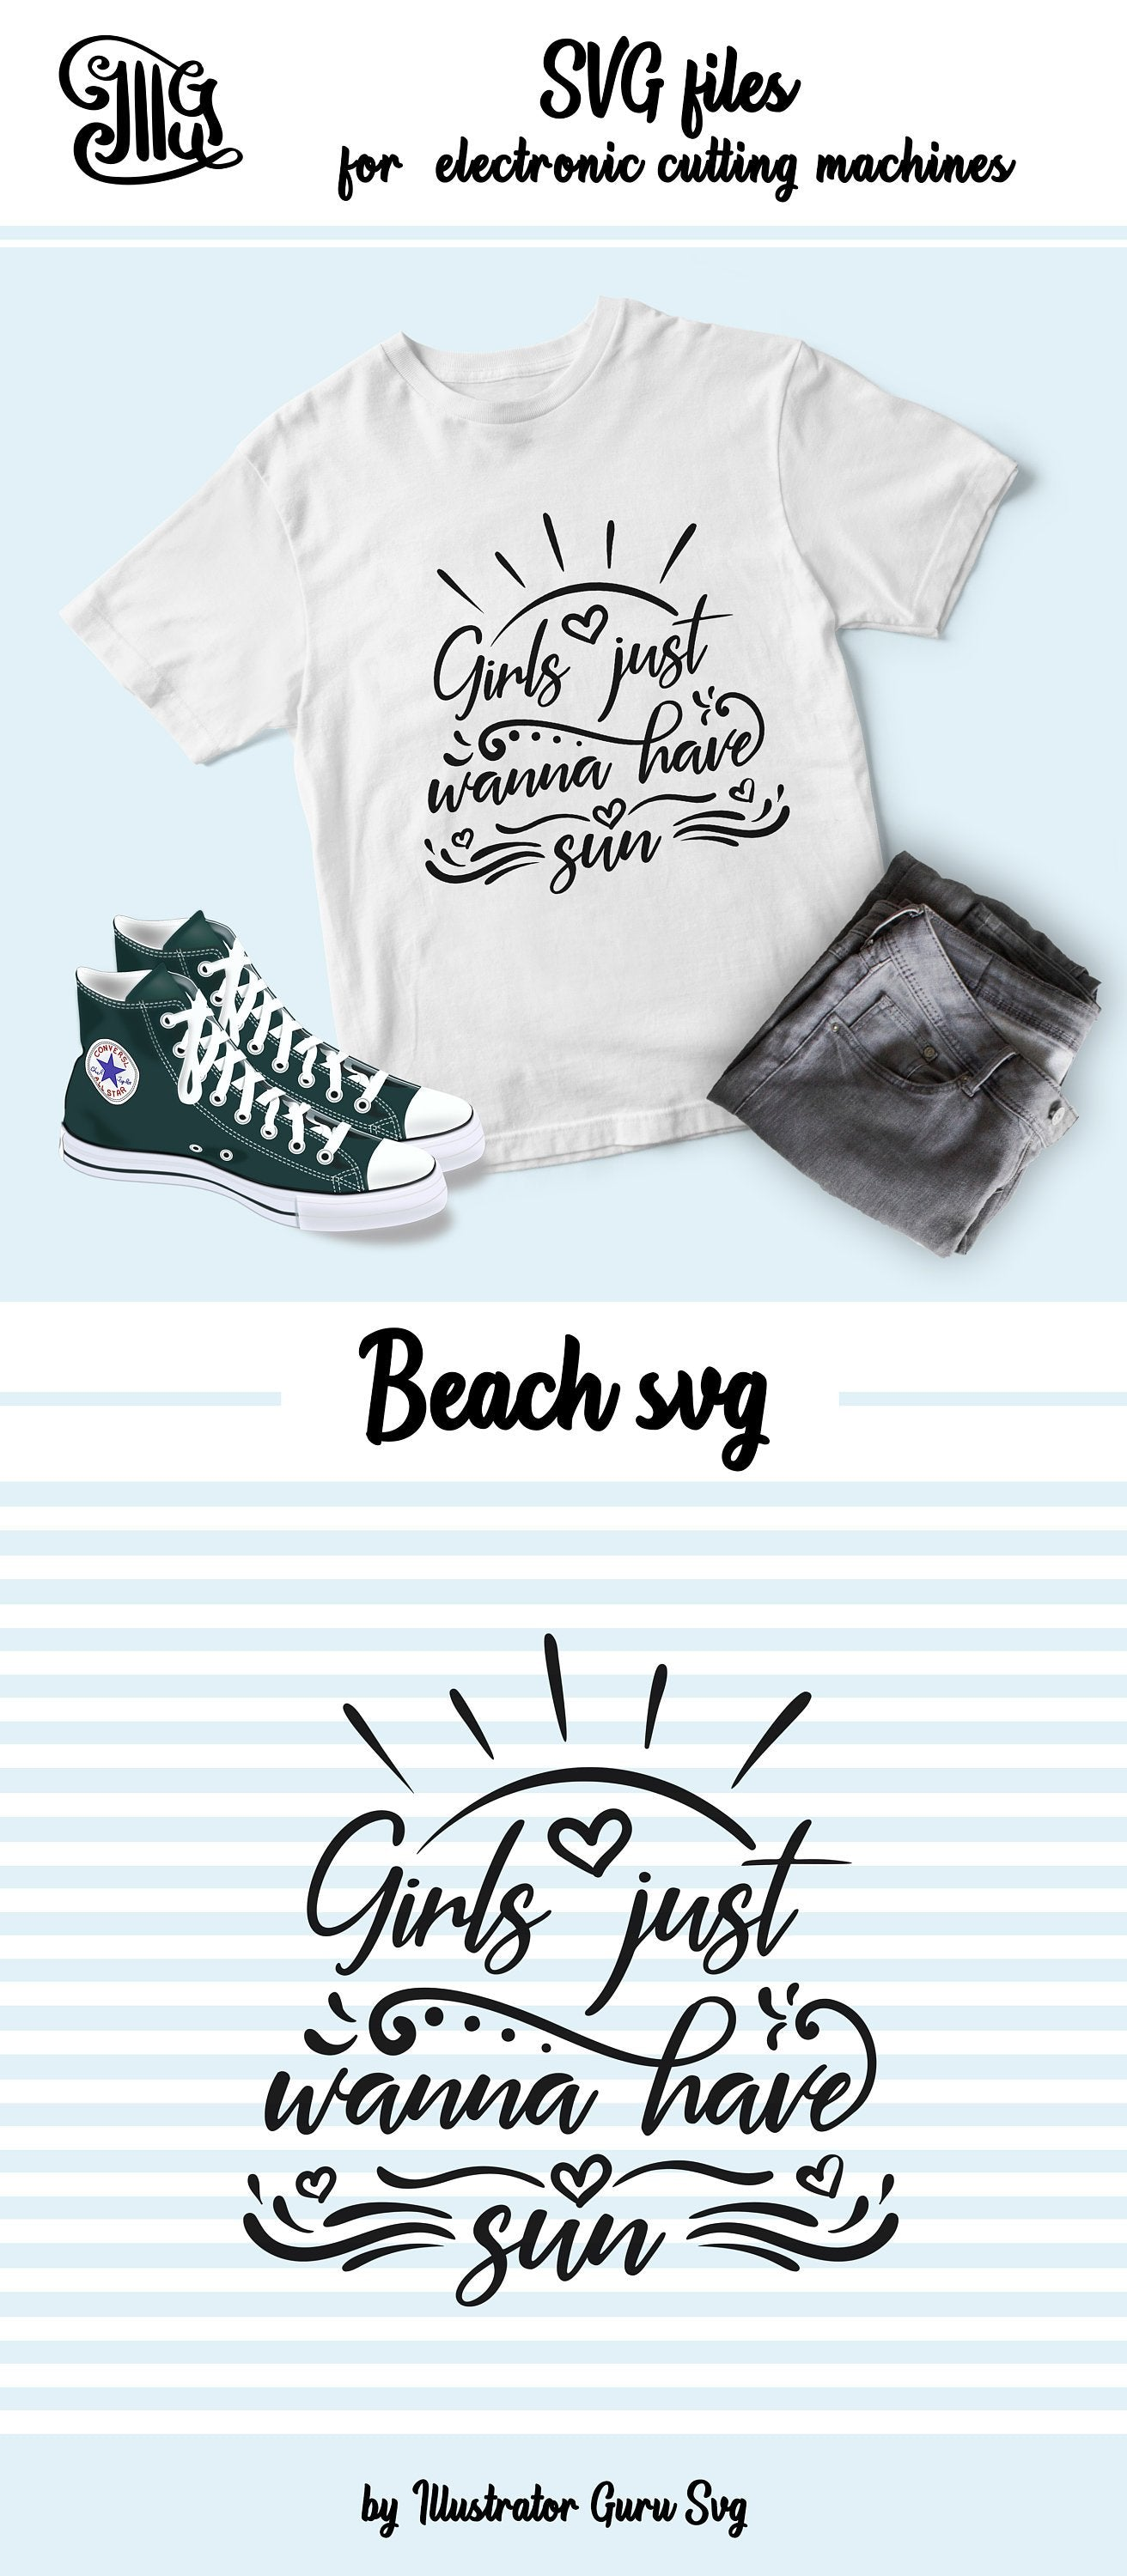 Girls just wanna have sun SVG, beach svg, summer svg, beach sayings svg, beach quotes svg, summer sayings, beach clipart,-by Illustrator Guru